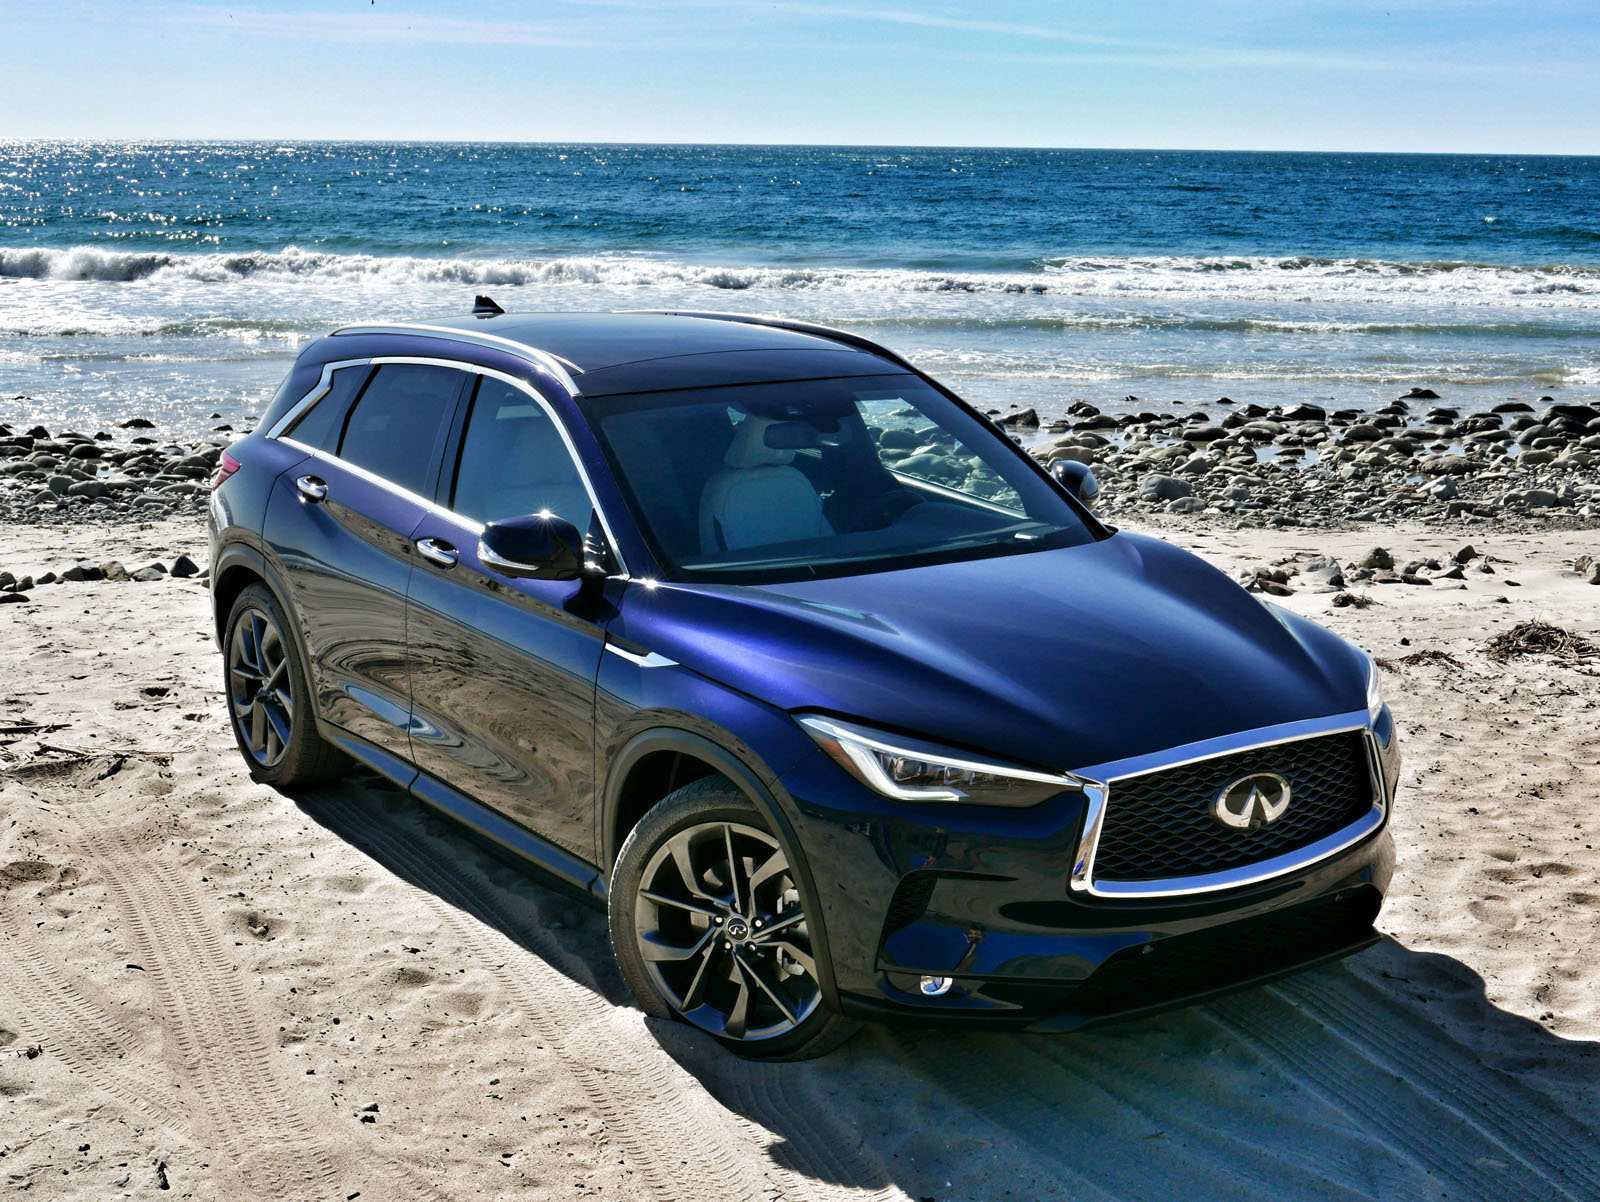 20 All New New 2019 Infiniti Qx50 Fuel Economy Review New Review for New 2019 Infiniti Qx50 Fuel Economy Review